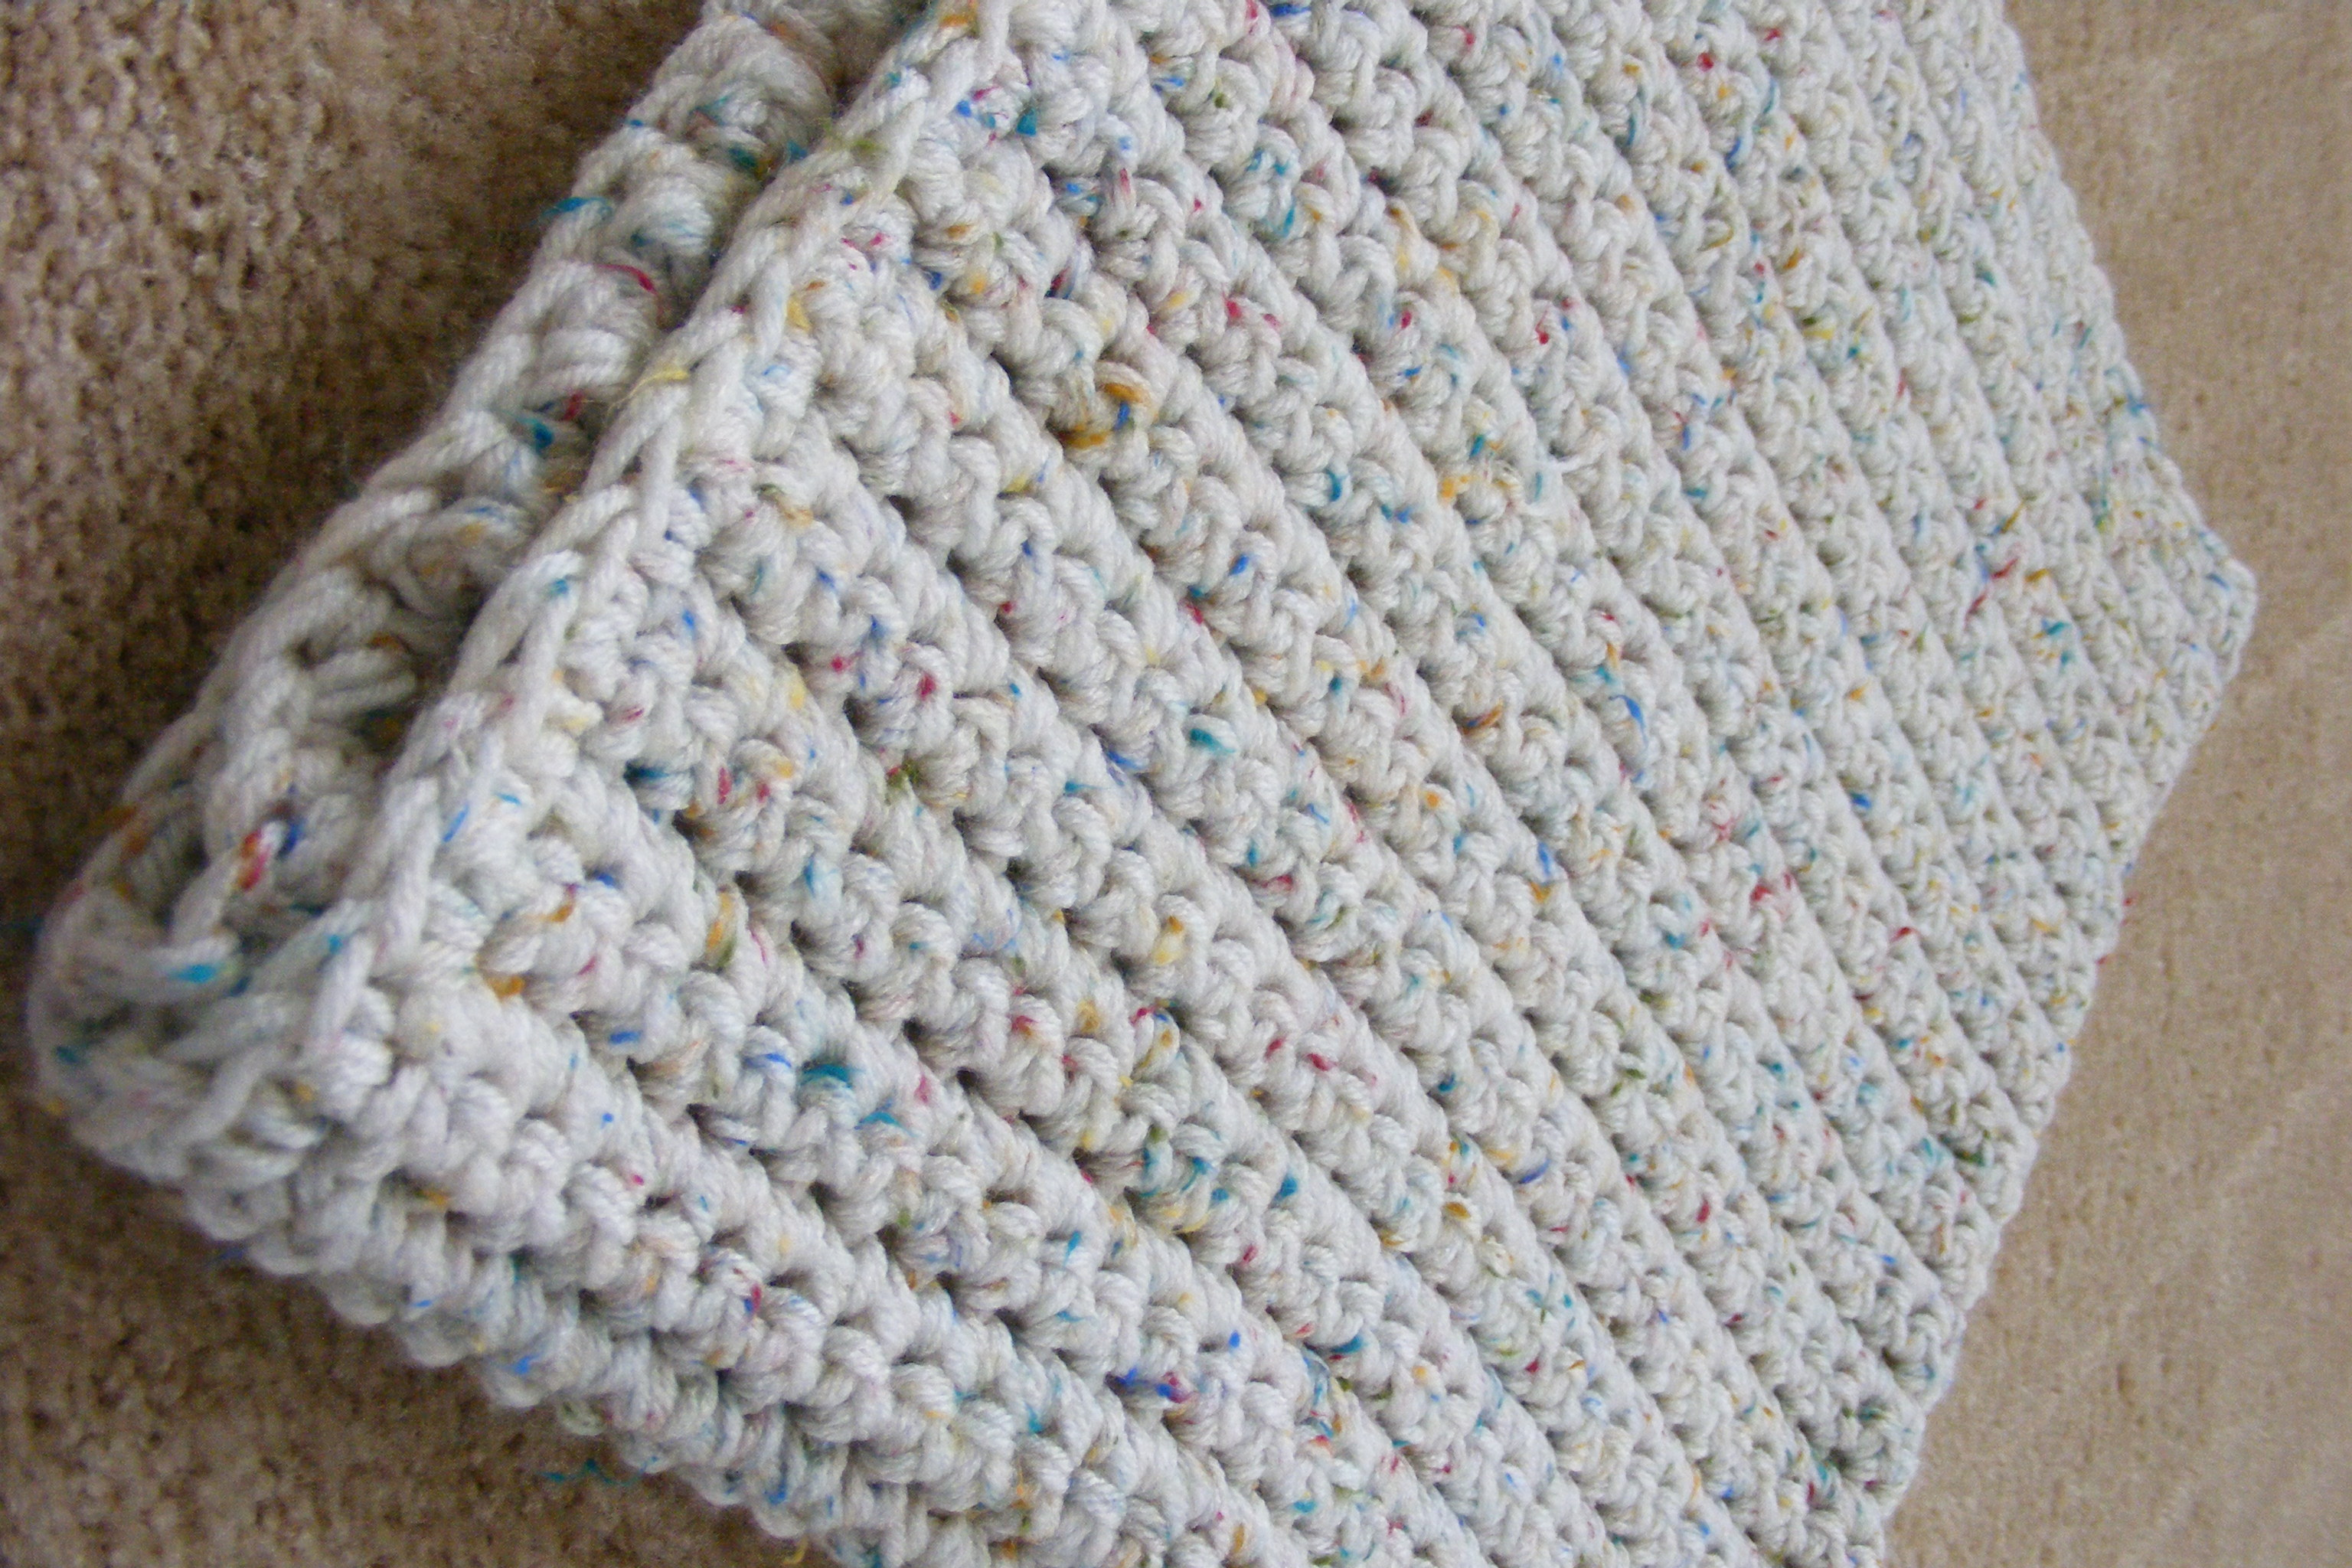 Easy Crochet Patterns For Baby Blankets : baby blanket crochet patterns free easy crochet patterns ...